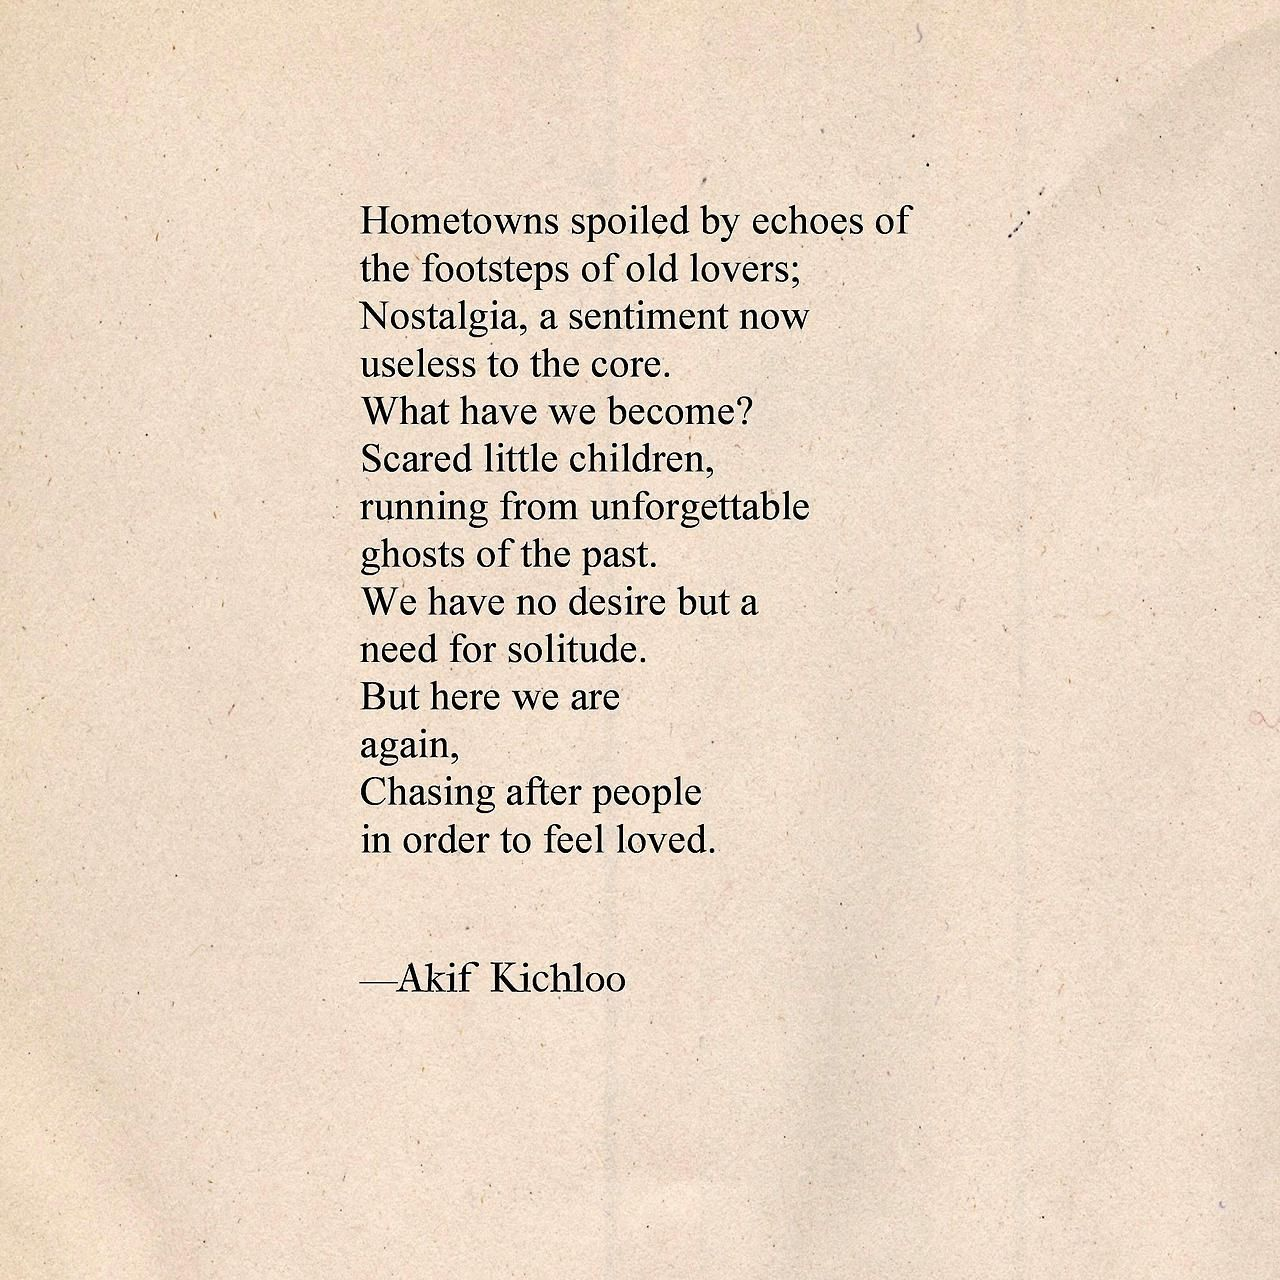 Find This Pin And More On Poems By Akif Kichloo